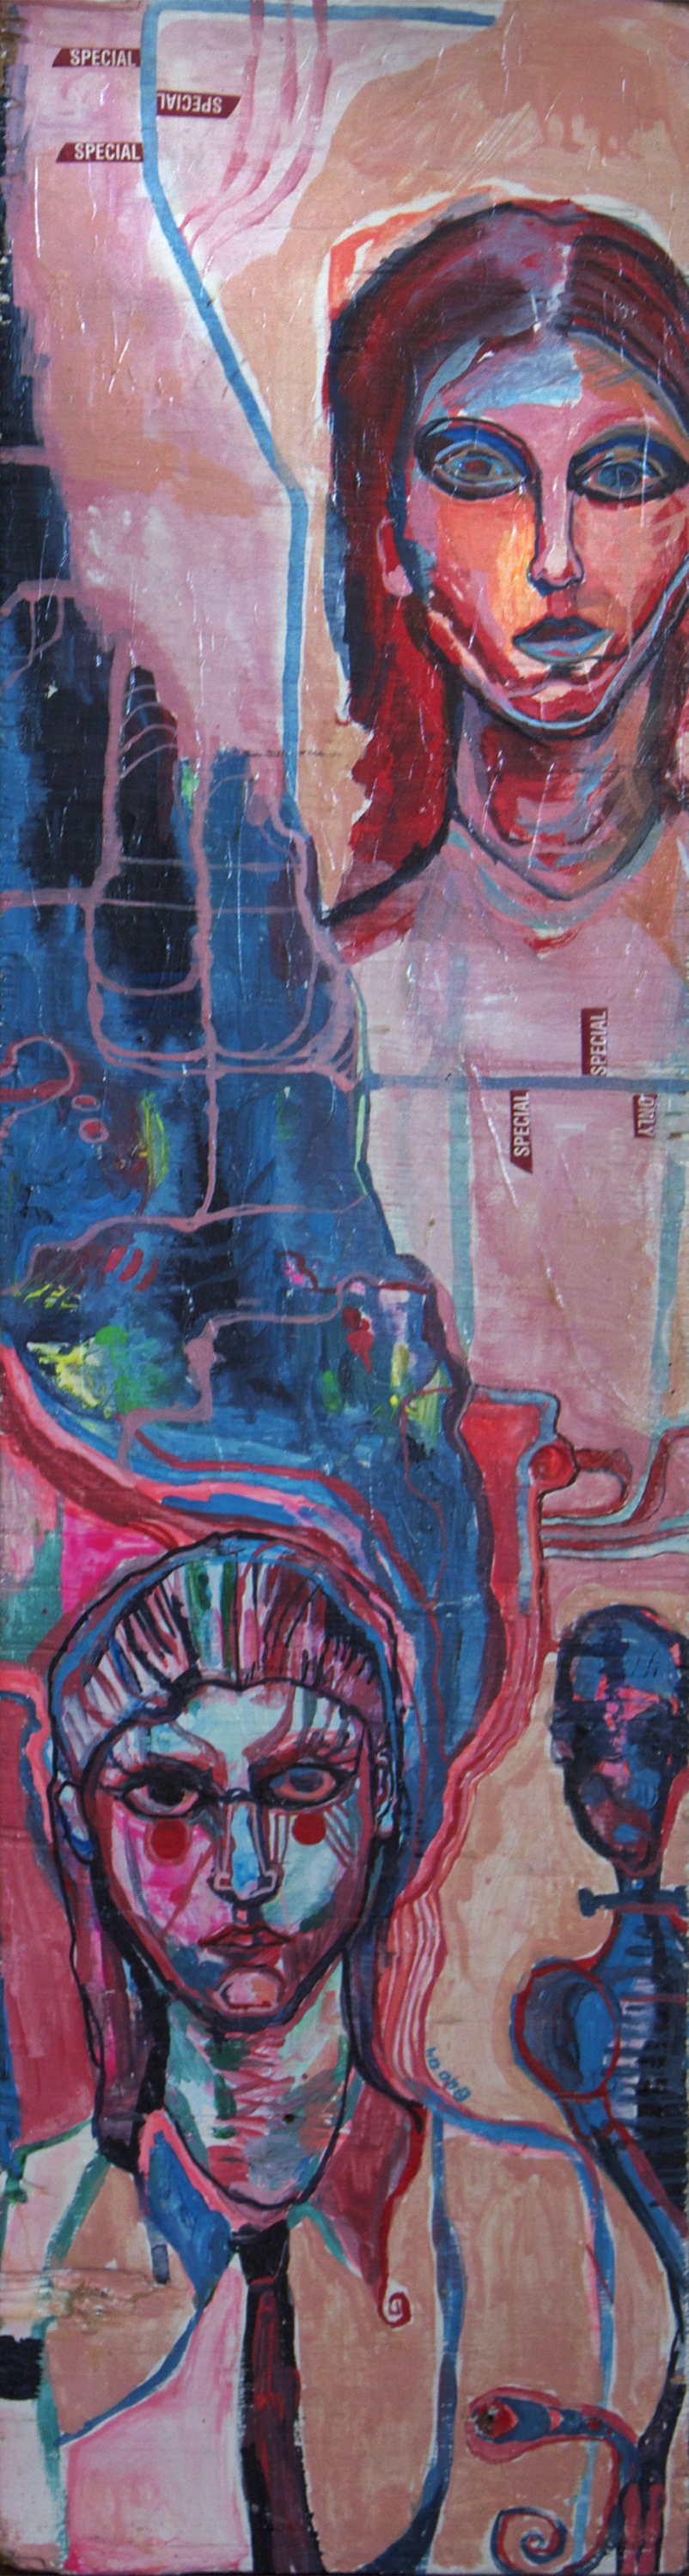 "Imagined Memory, mixed media on wood, 26x7"", 2004"